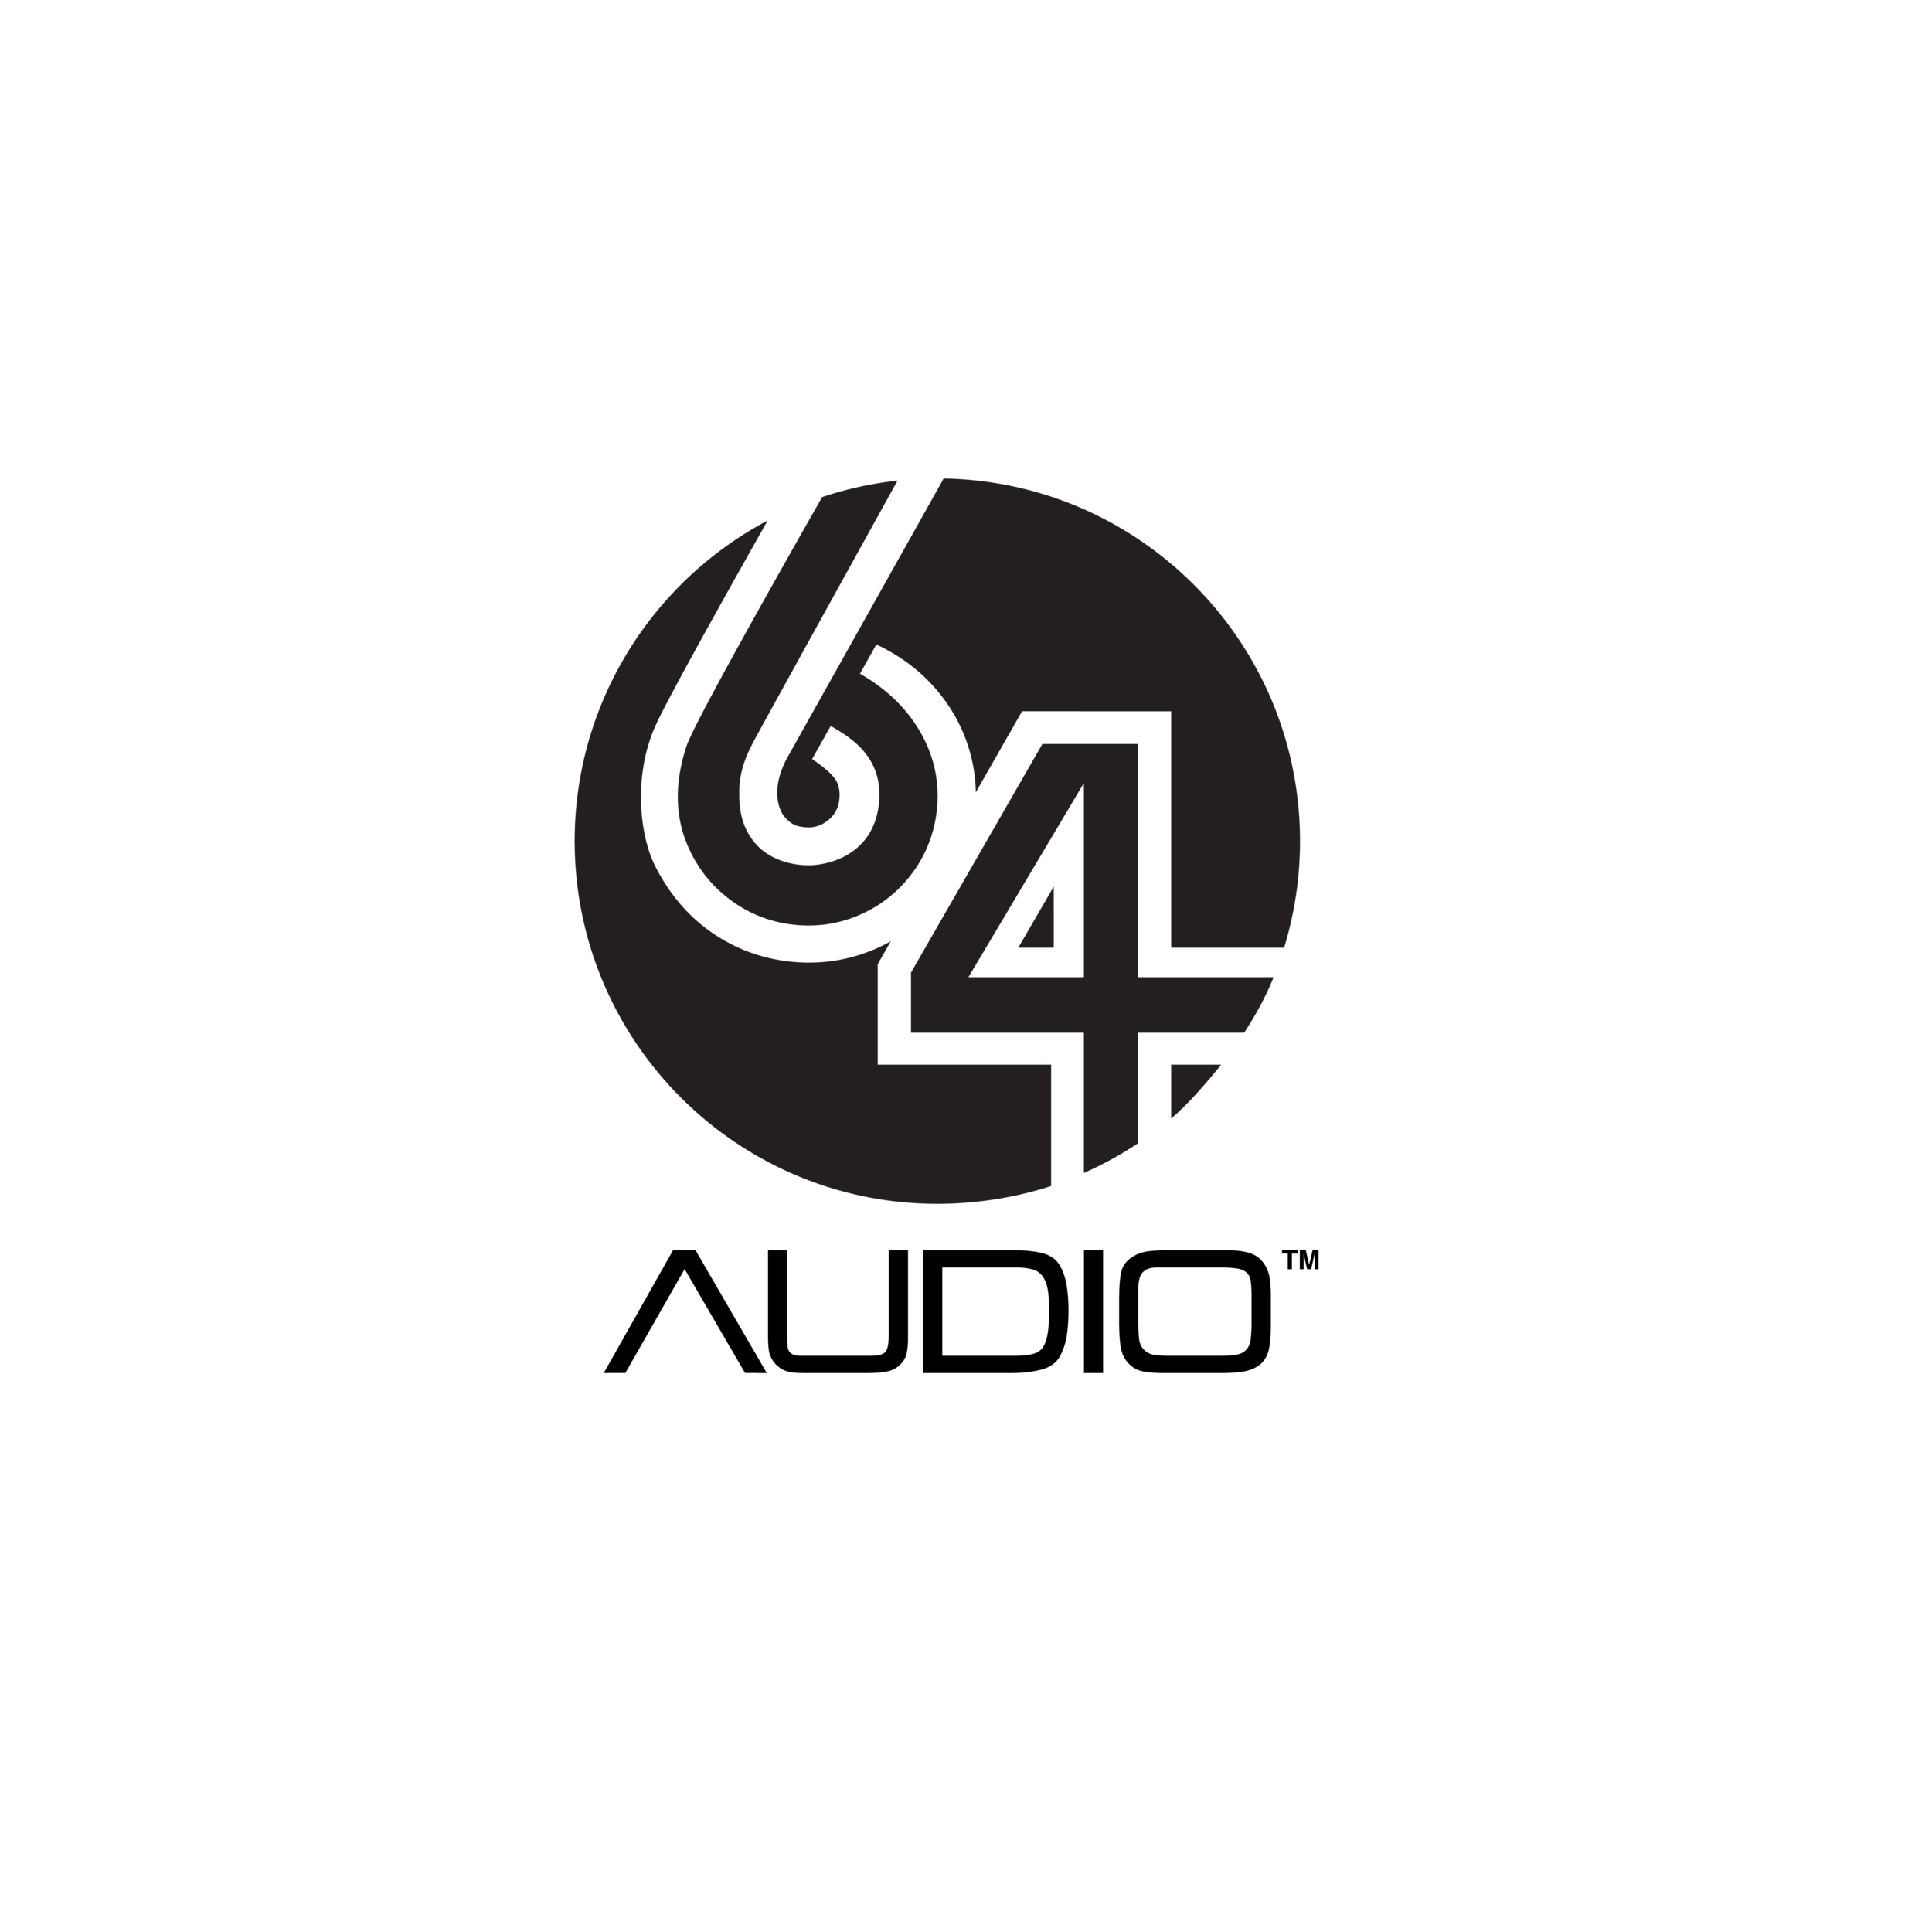 64Audio_stacked_logo.png